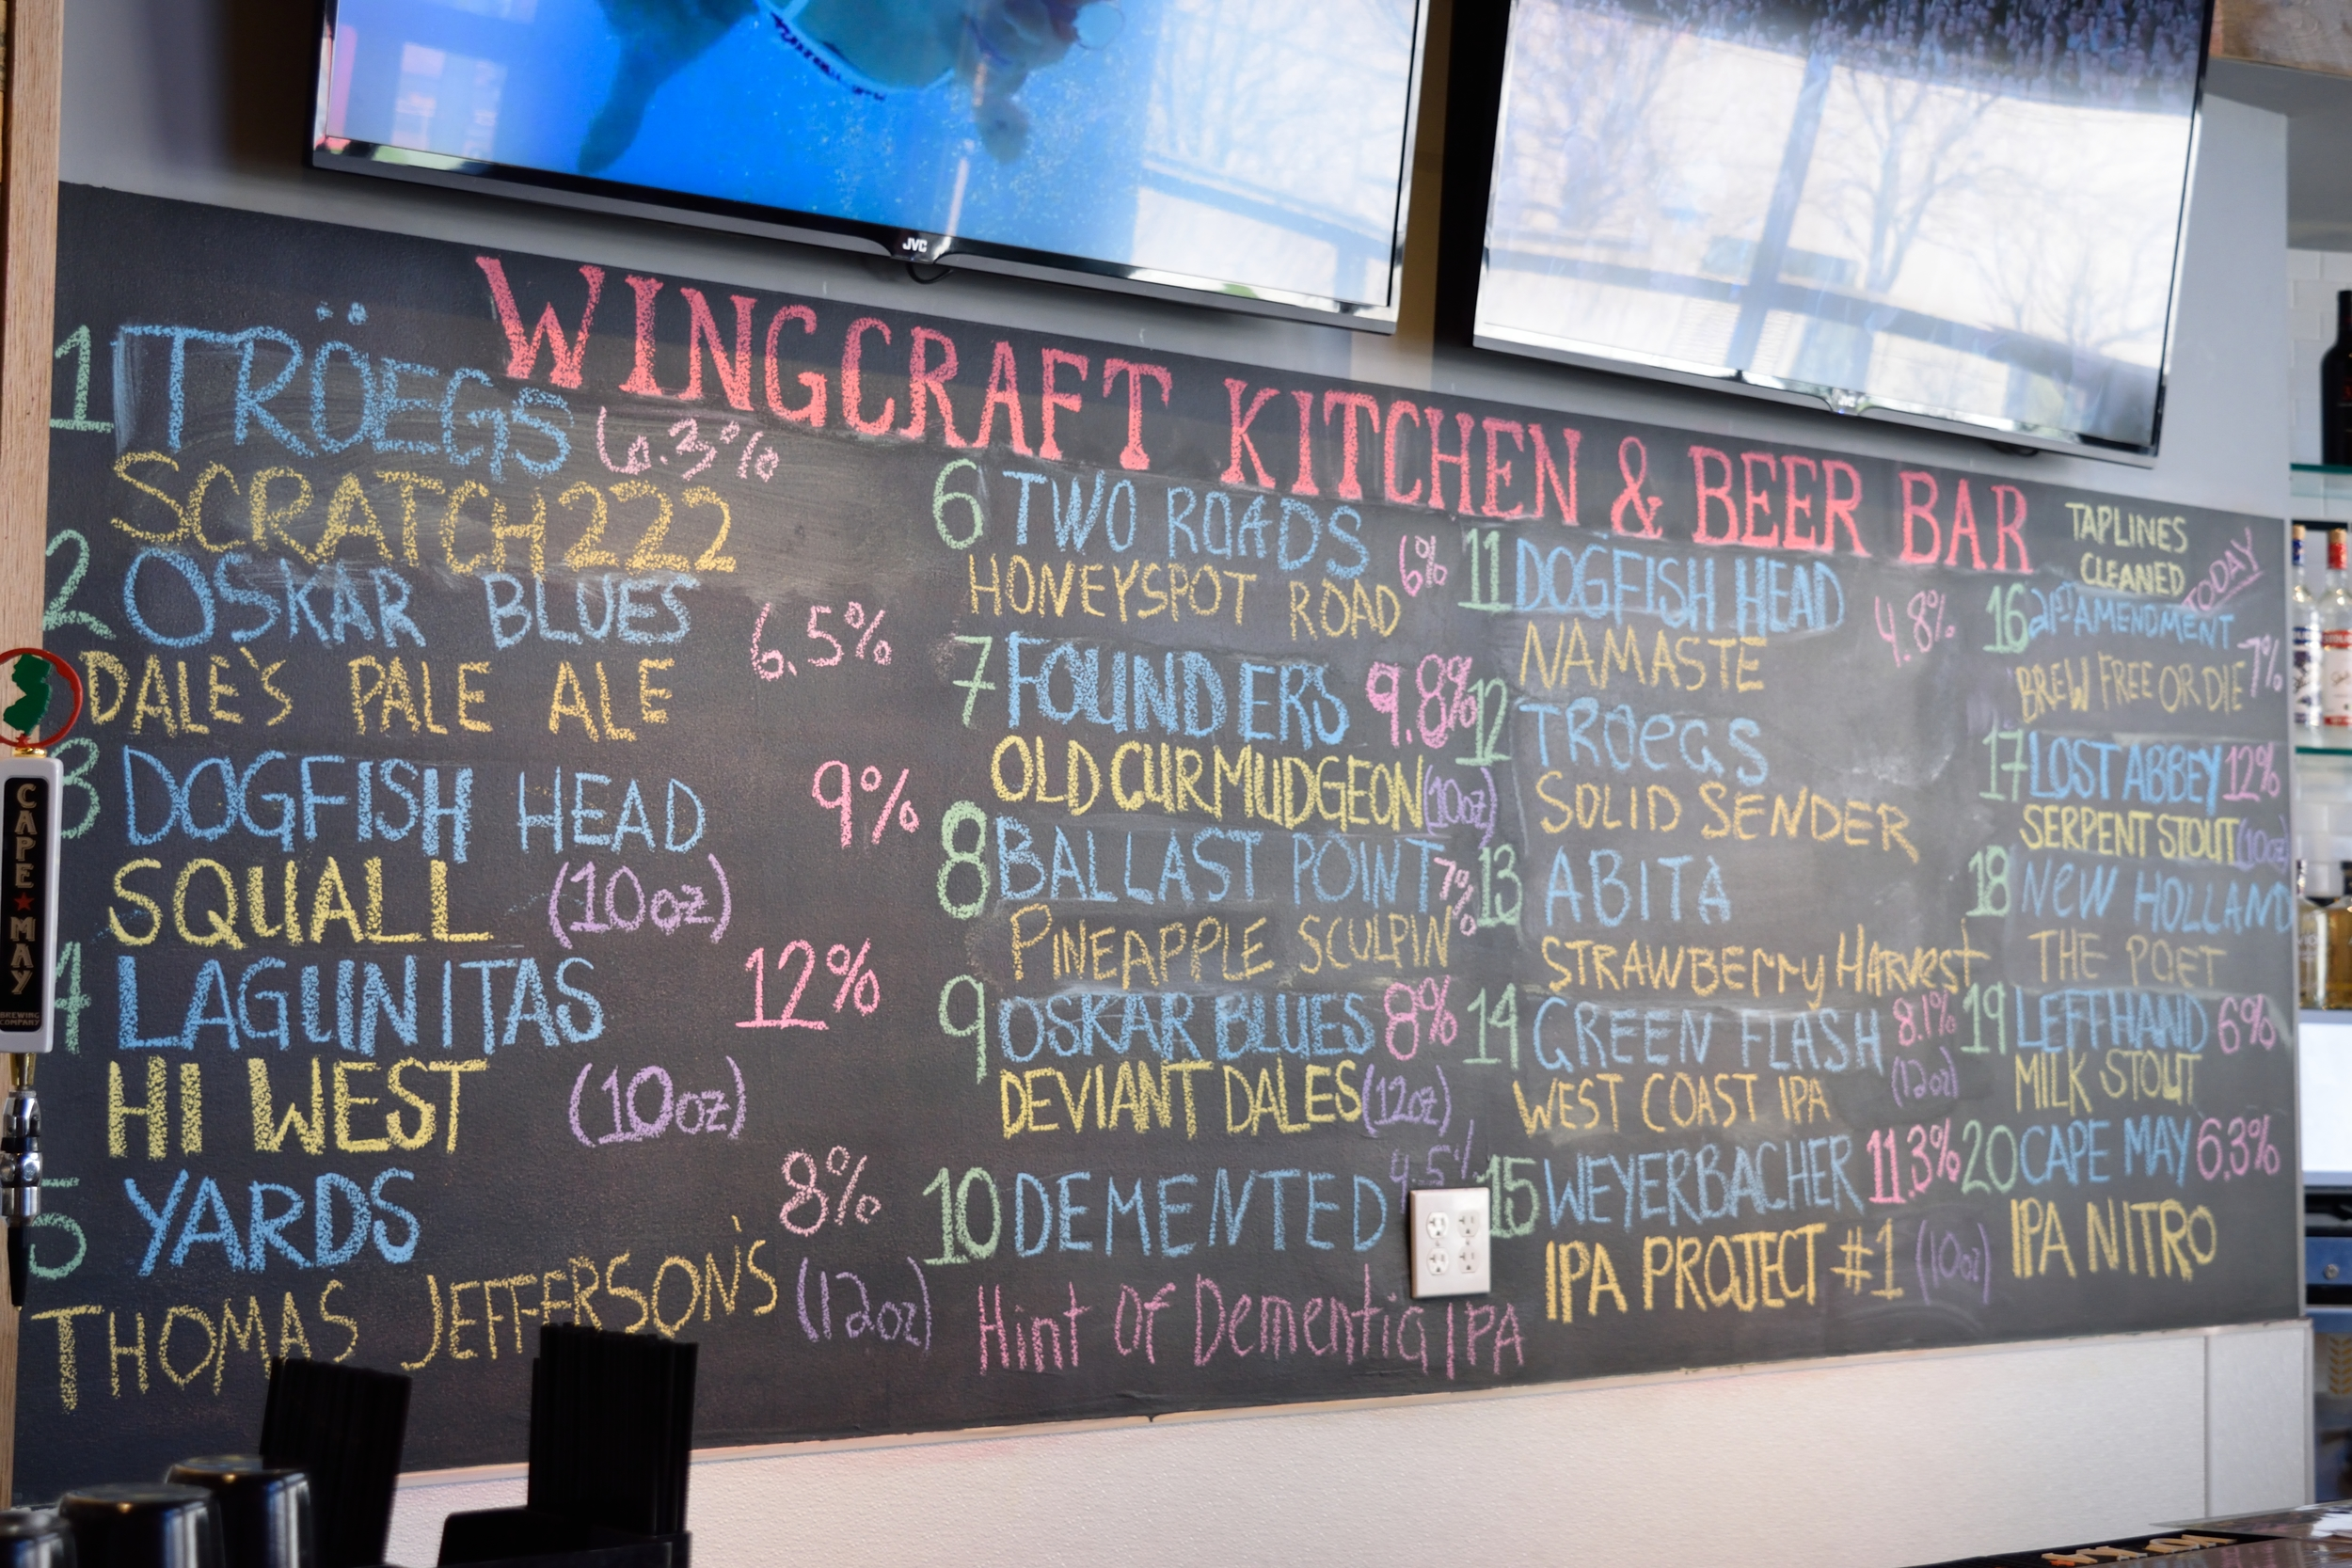 It's the big board of beers again, you couldn't possibly go wrong with these offerings.